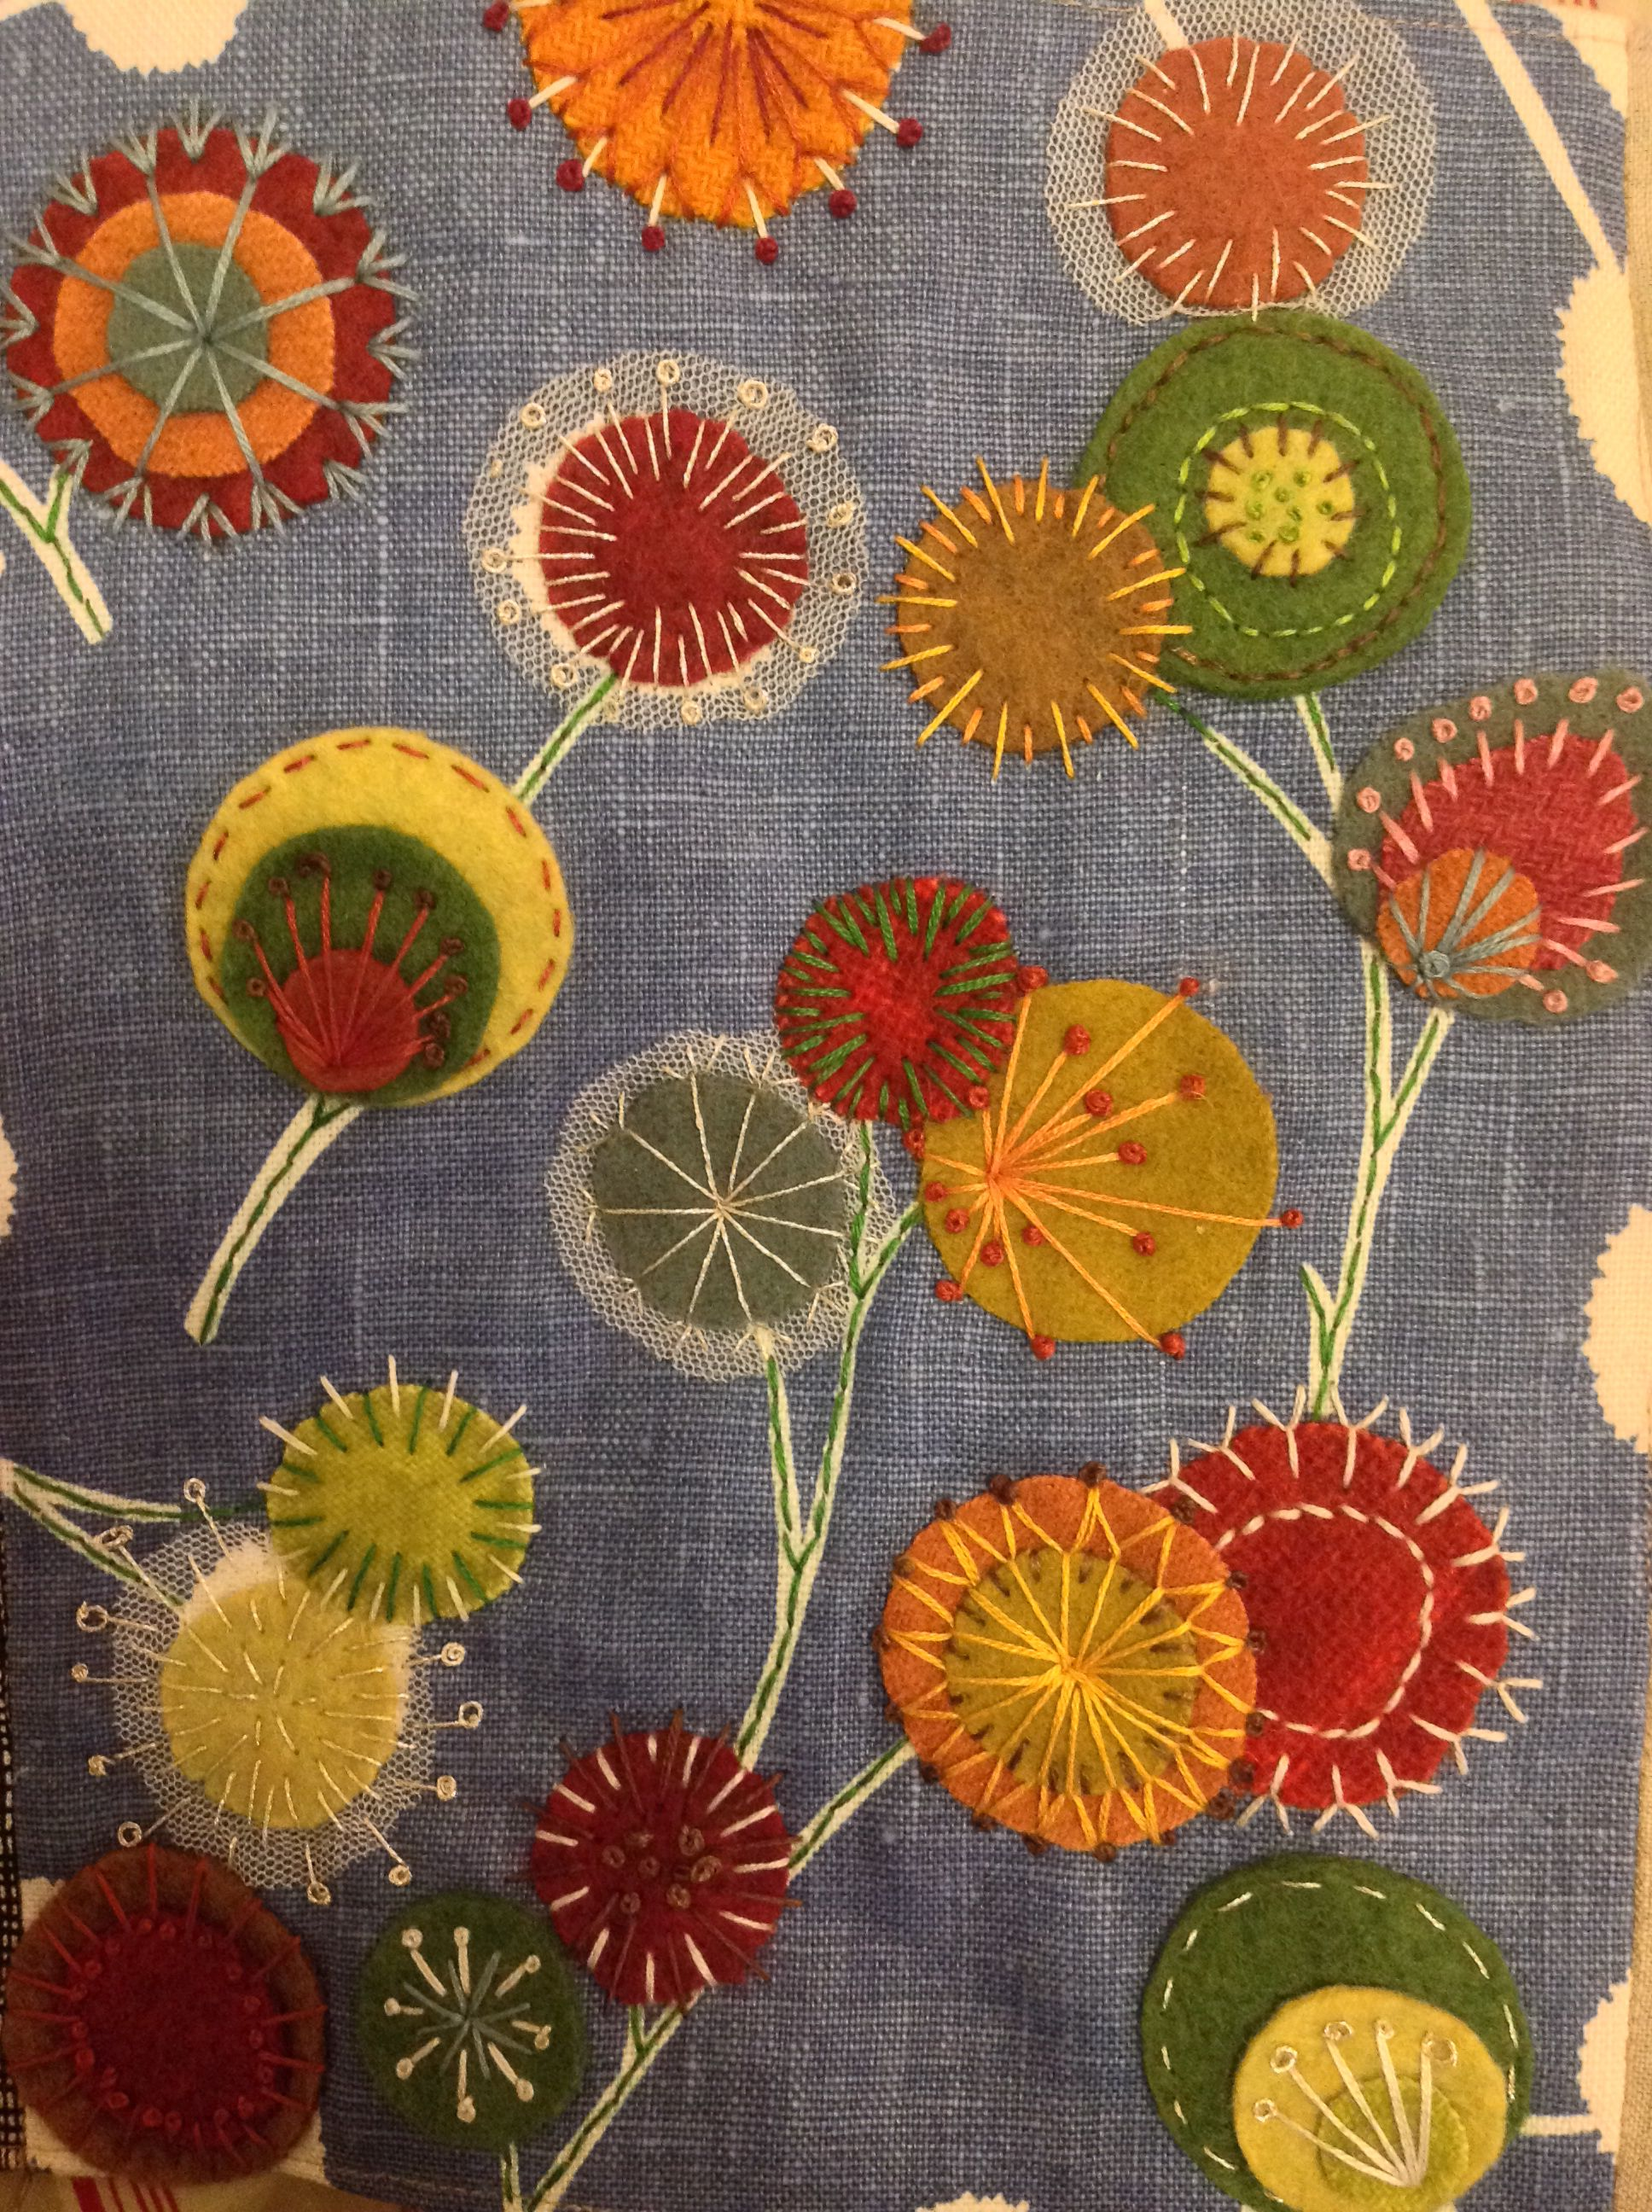 Dandelion book cover hand embroidery pinterest